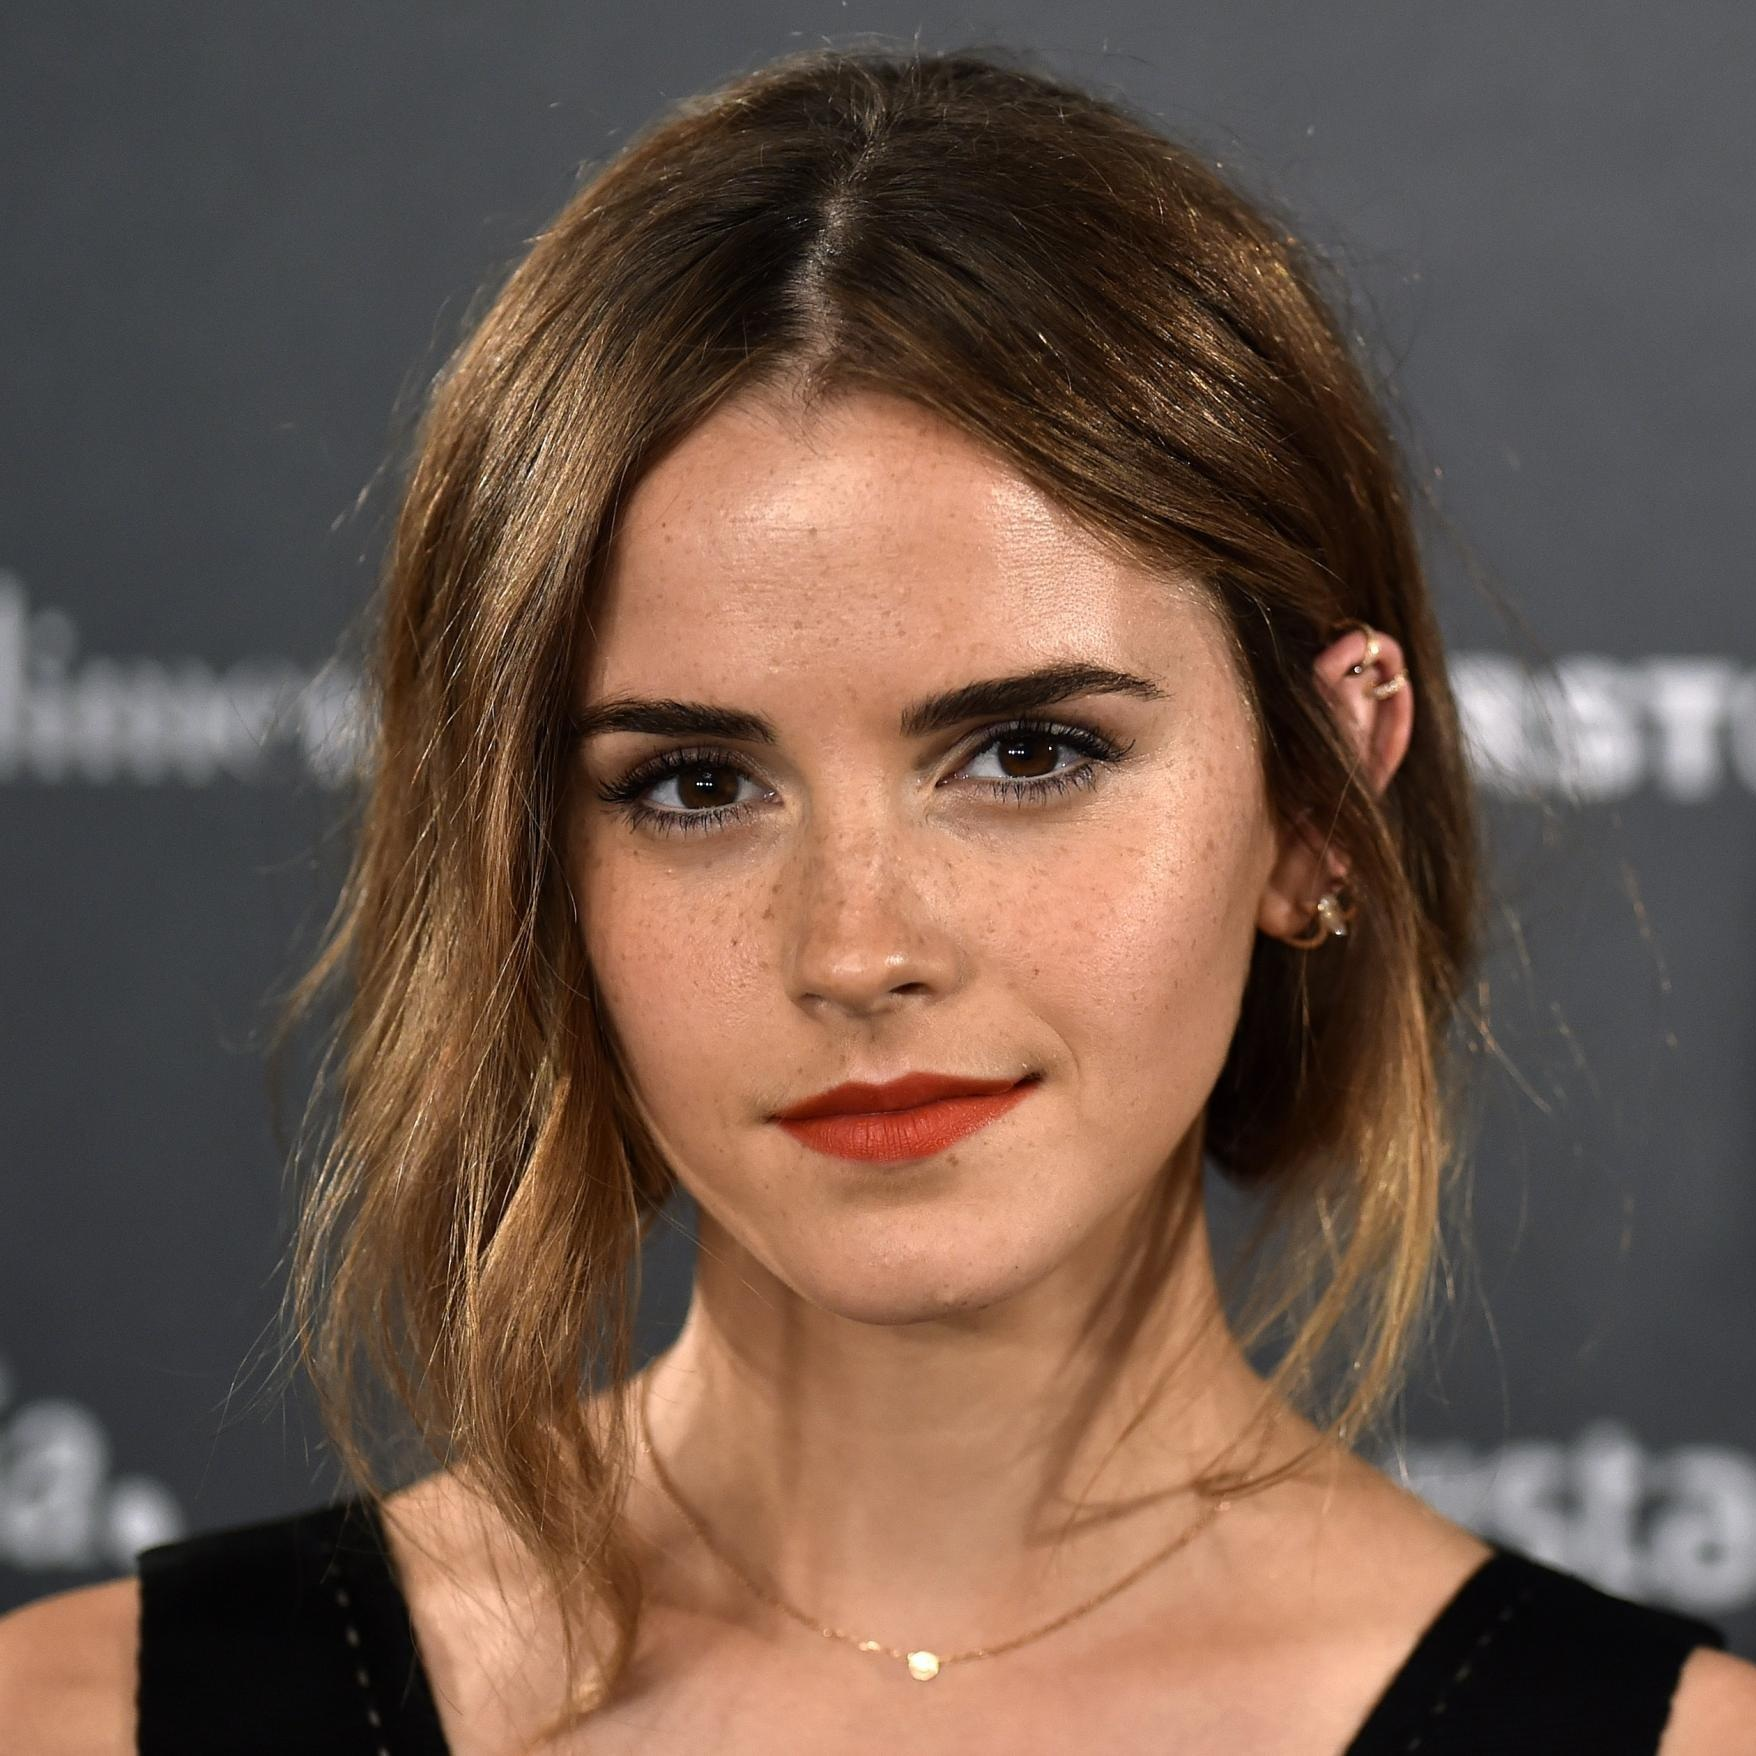 Original Emma Watson photo